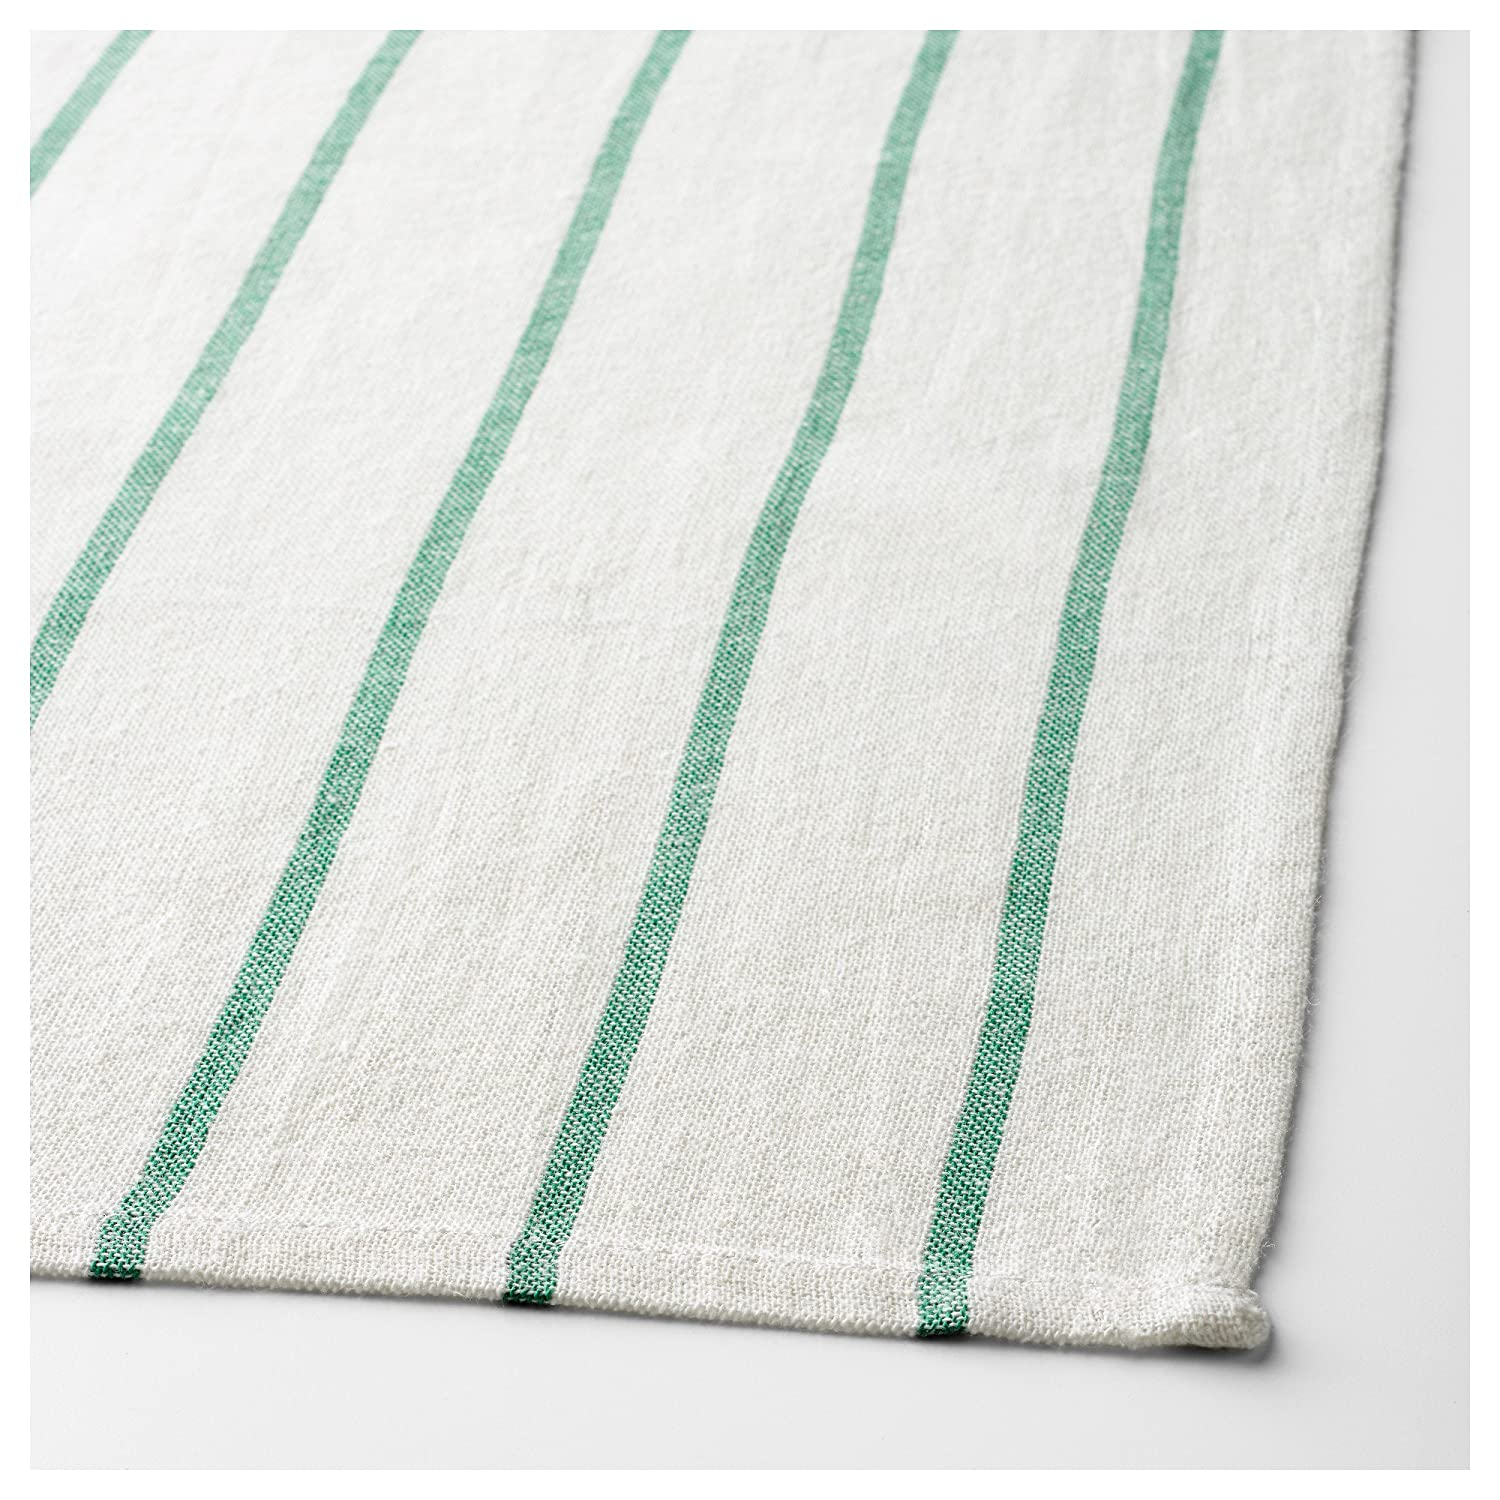 Ikea Kitchen Towels Hanging Loops 8 Pack Green Cotton 20 X 26